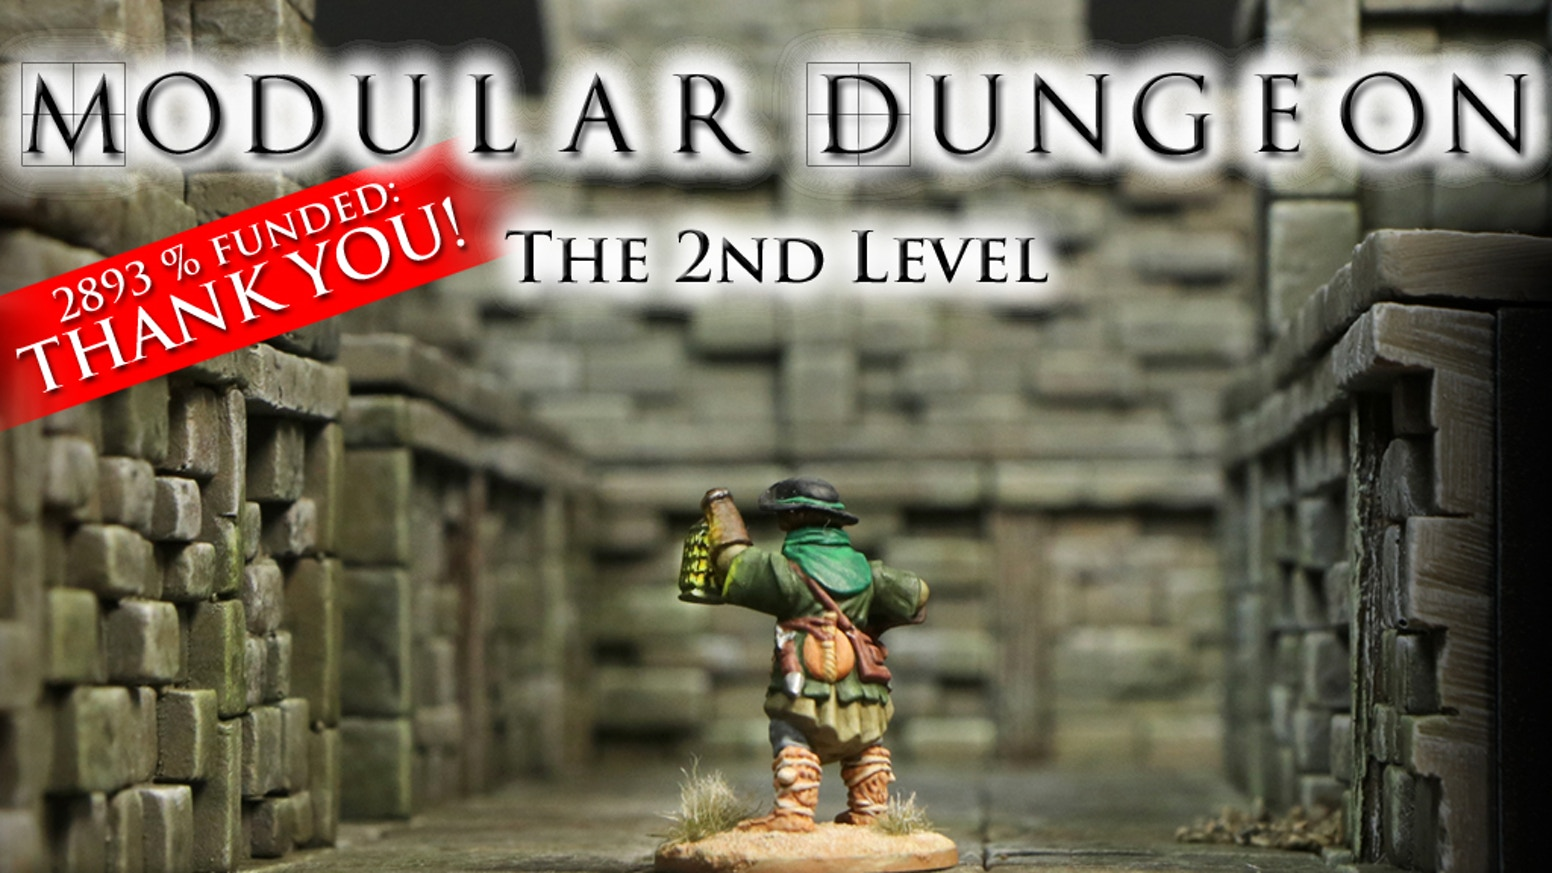 MODULAR DUNGEON - The 2nd Level